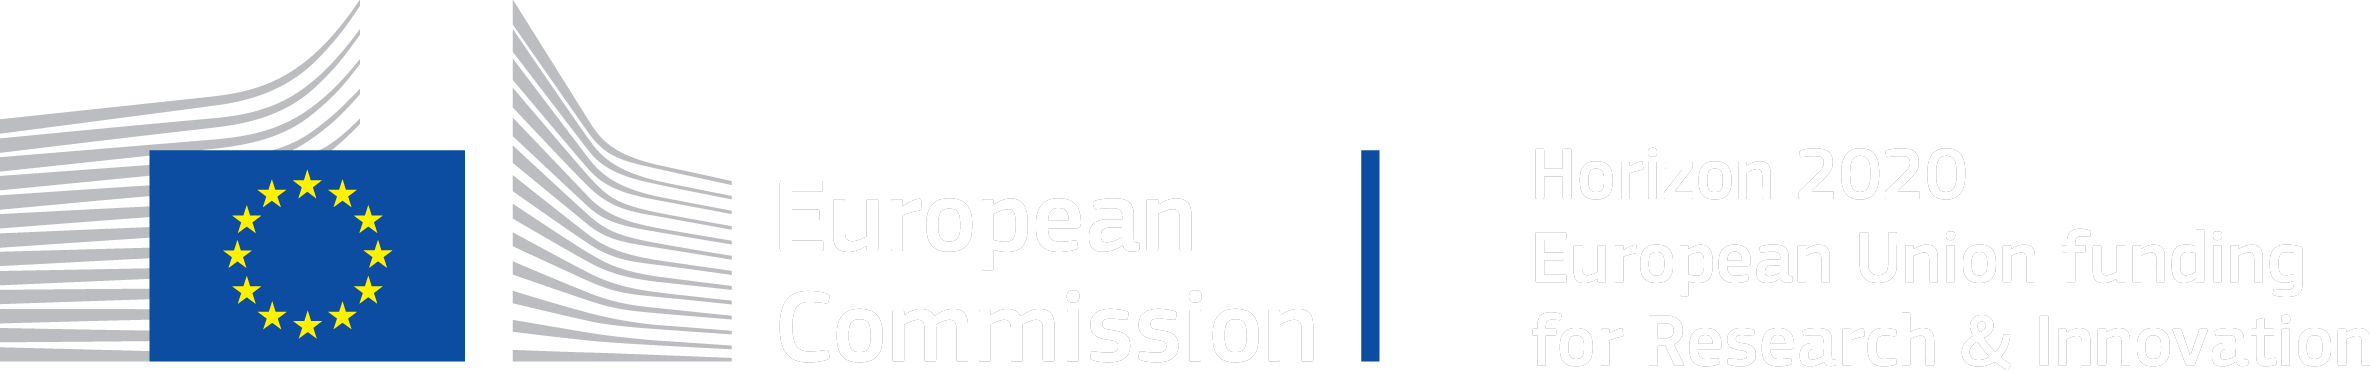 European Commission - Horizon 2020 European Union funding for Research & Innovation